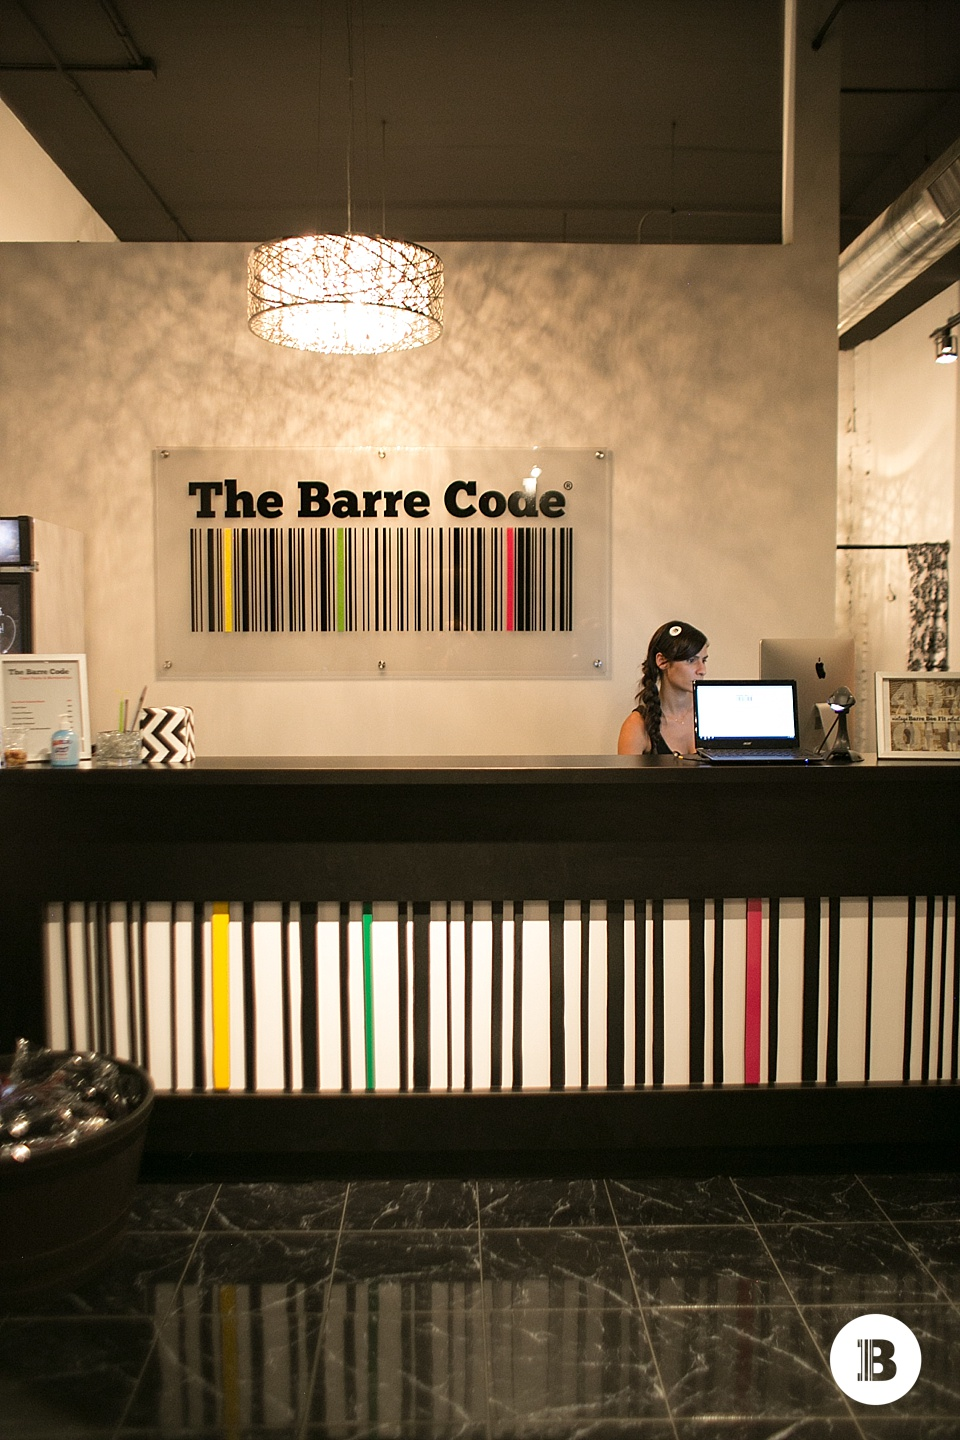 barre bee fit rebrands as The barre code chicago asweatlife fabfitchicago chicago fitness studio